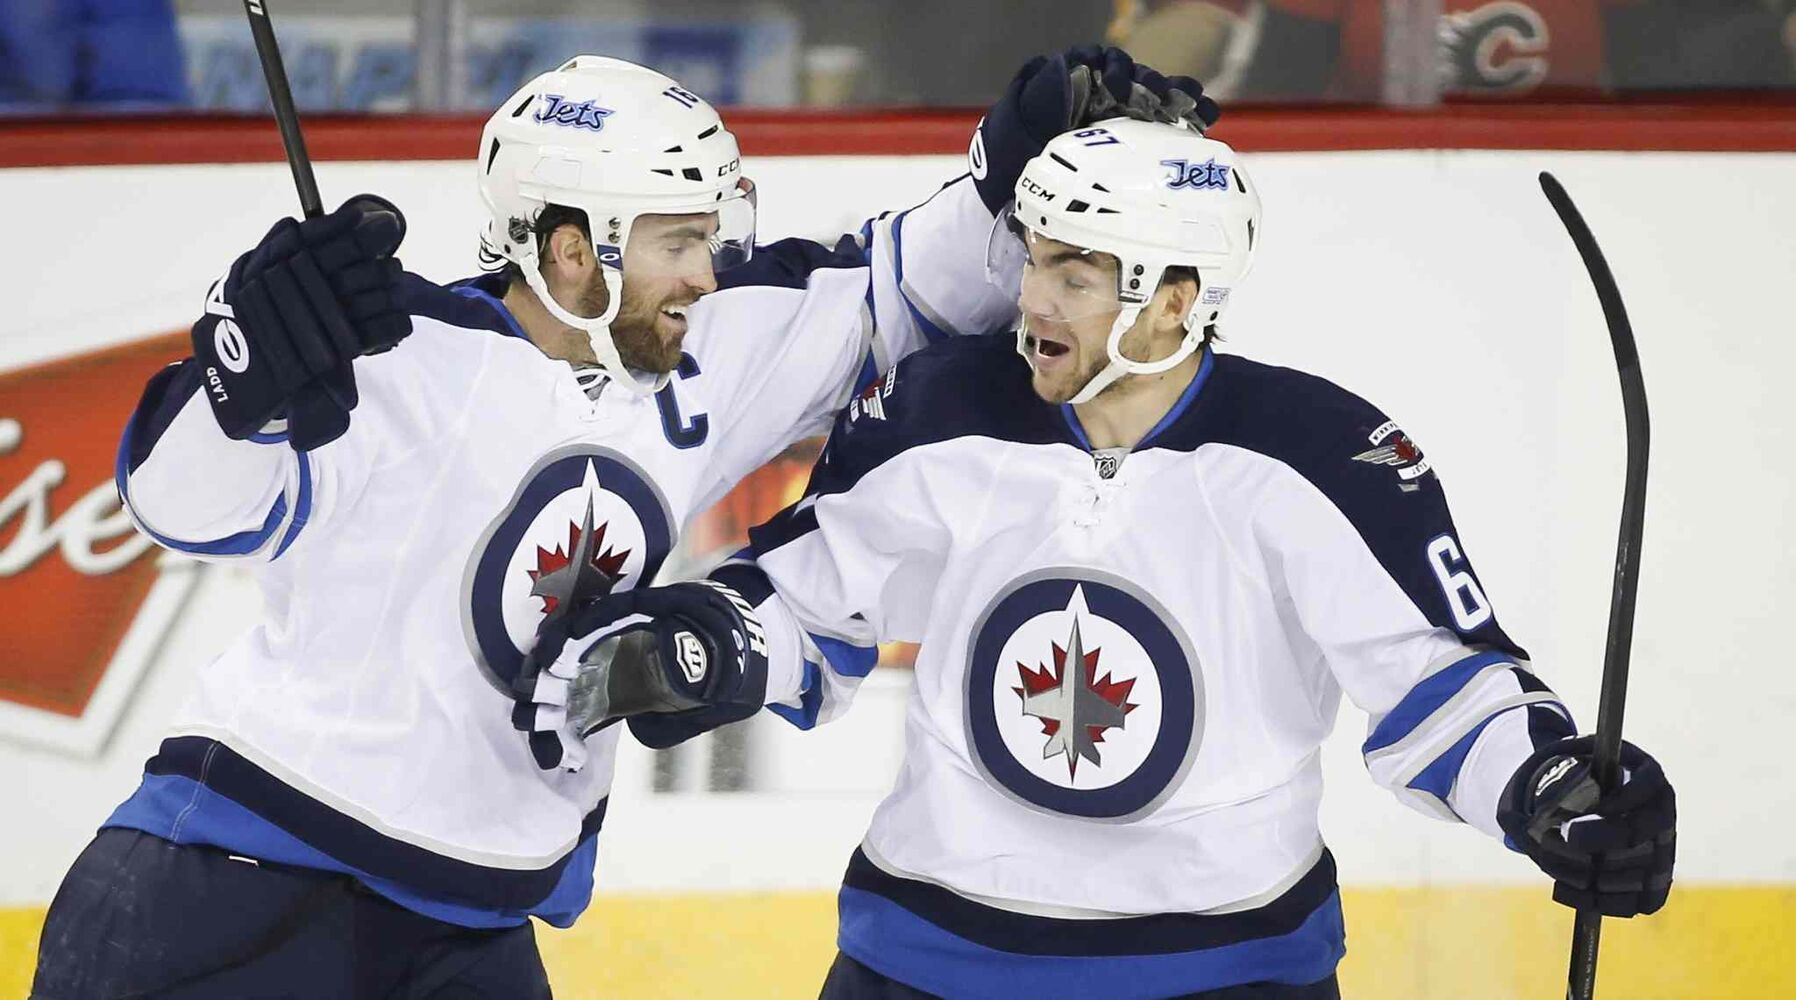 Winnipeg Jets' Michael Frolik, left, celebrates his assist with teammate Andrew Ladd during the game's first period against the Calgary Flames Thursday.